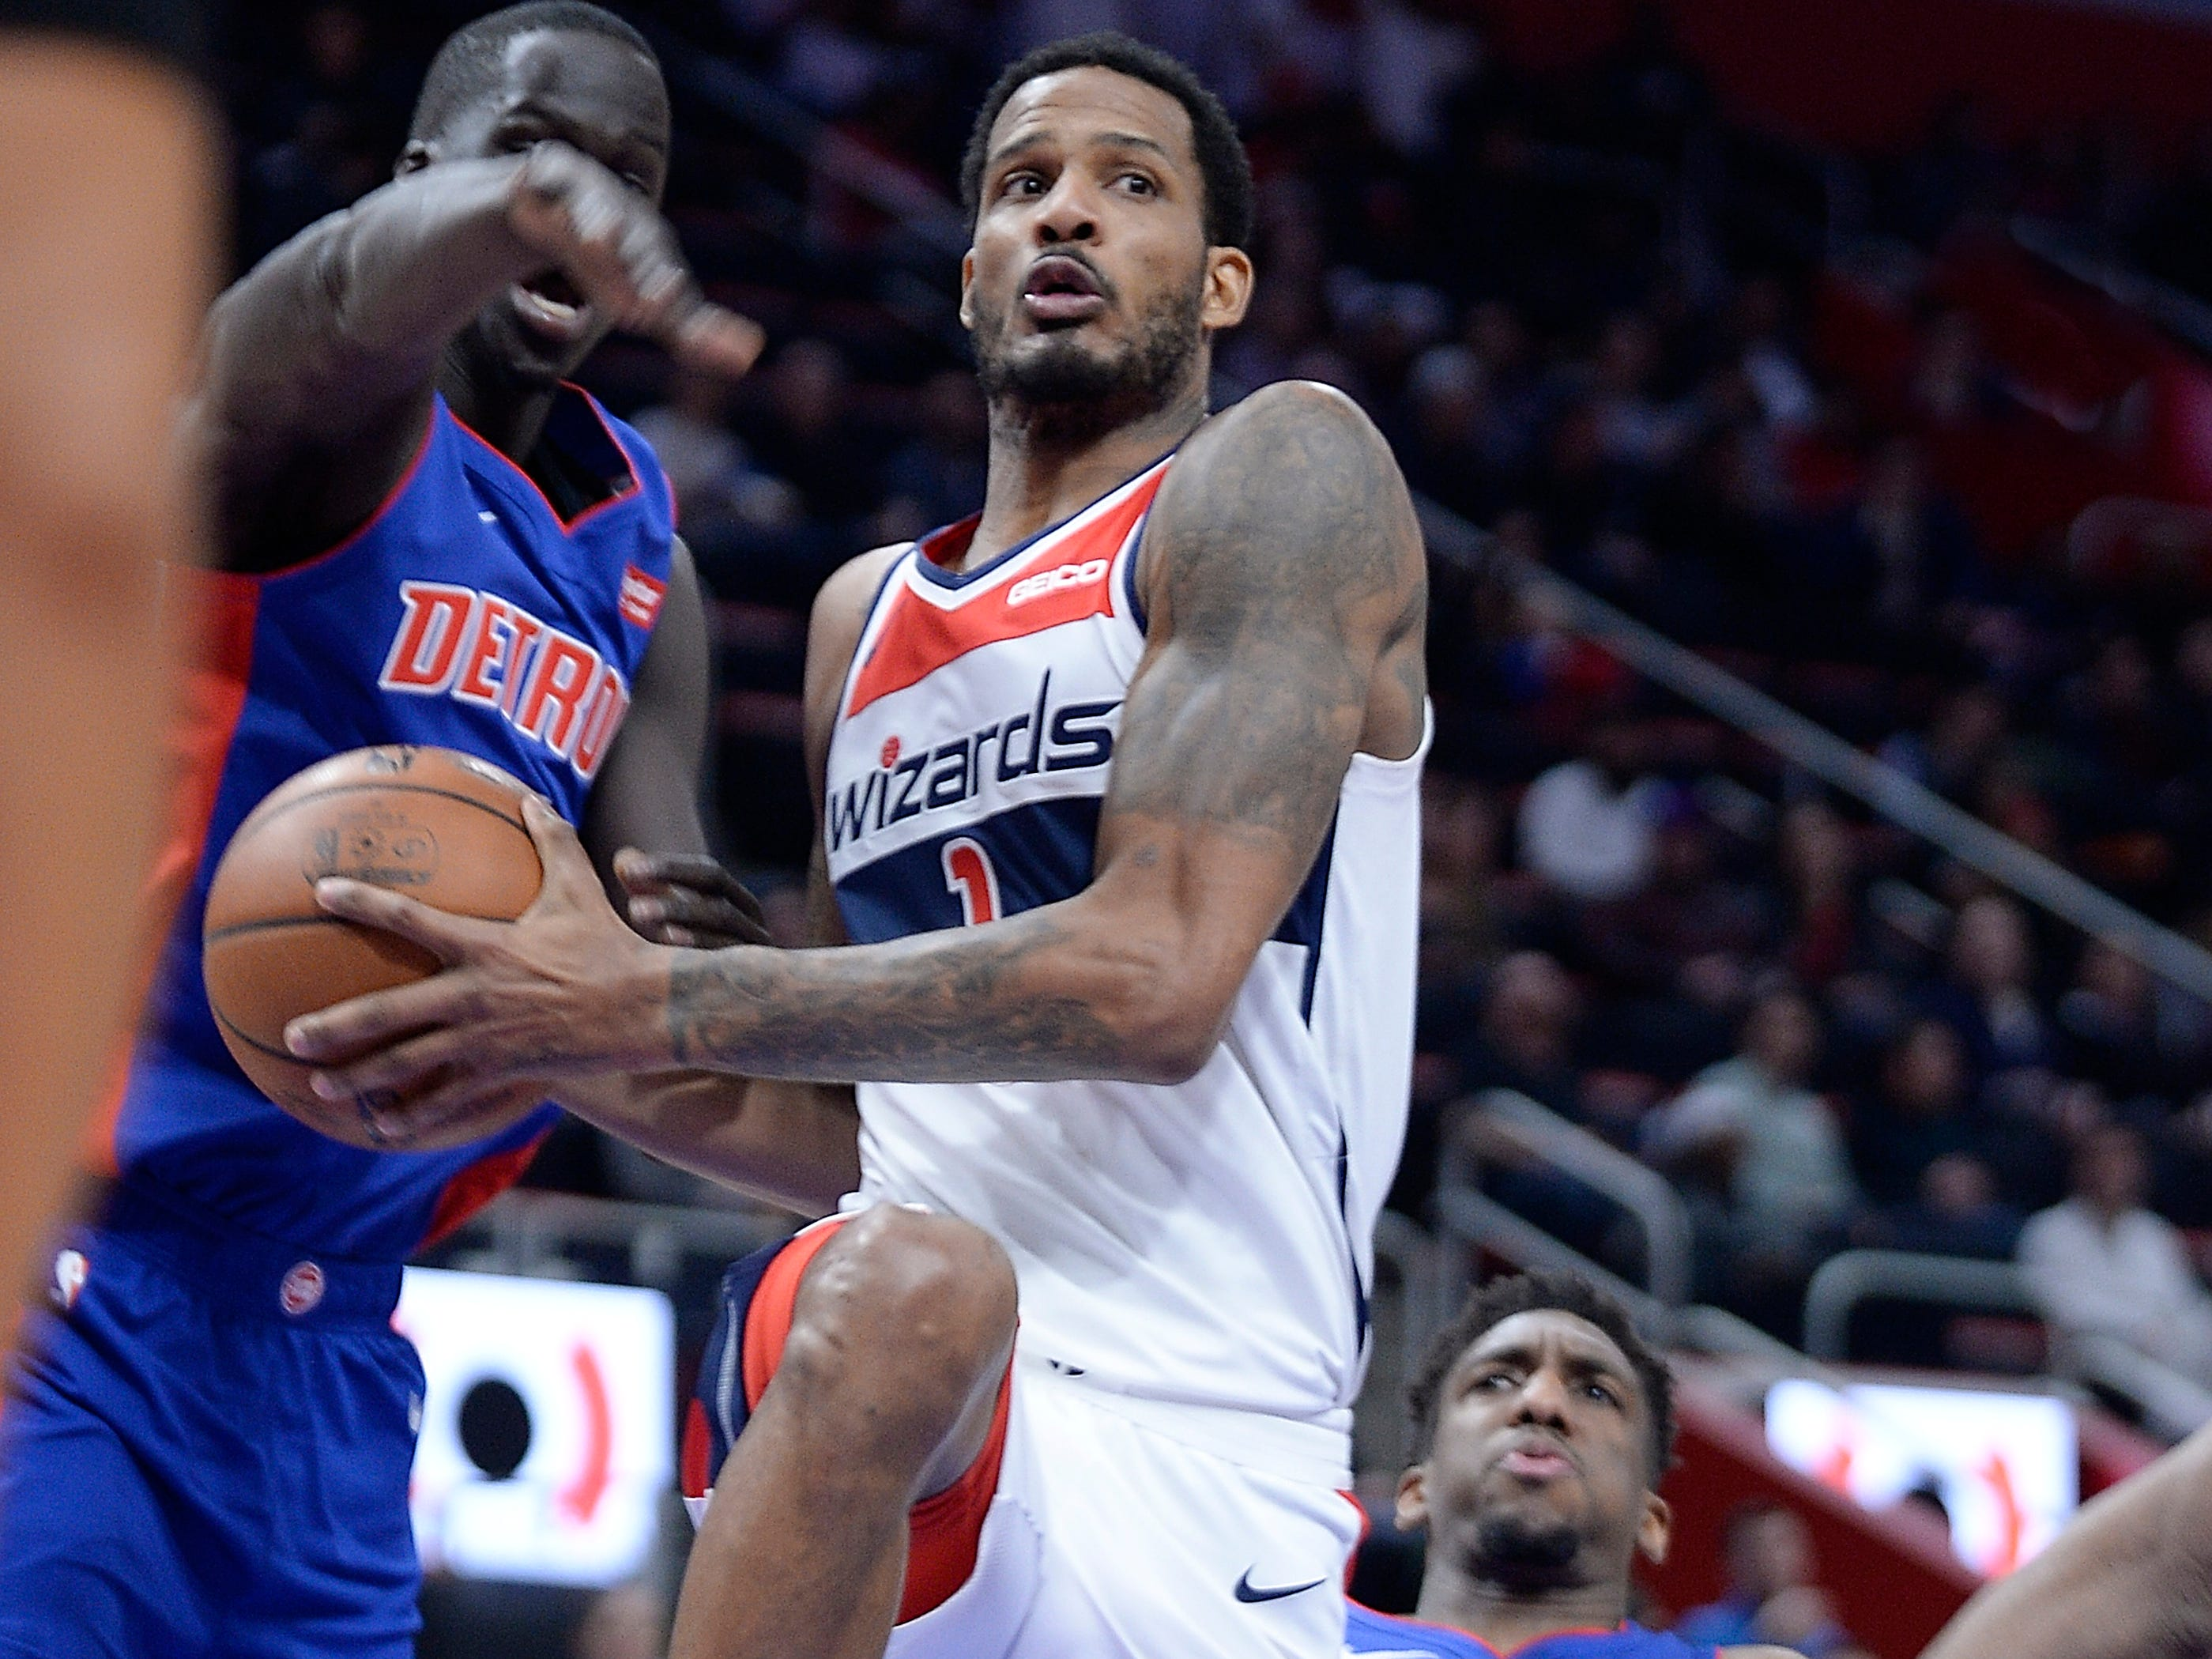 Wizards' Trevor Ariza (1) drives around Pistons' Thon Maker and Langston Galloway (9)in the third quarter.